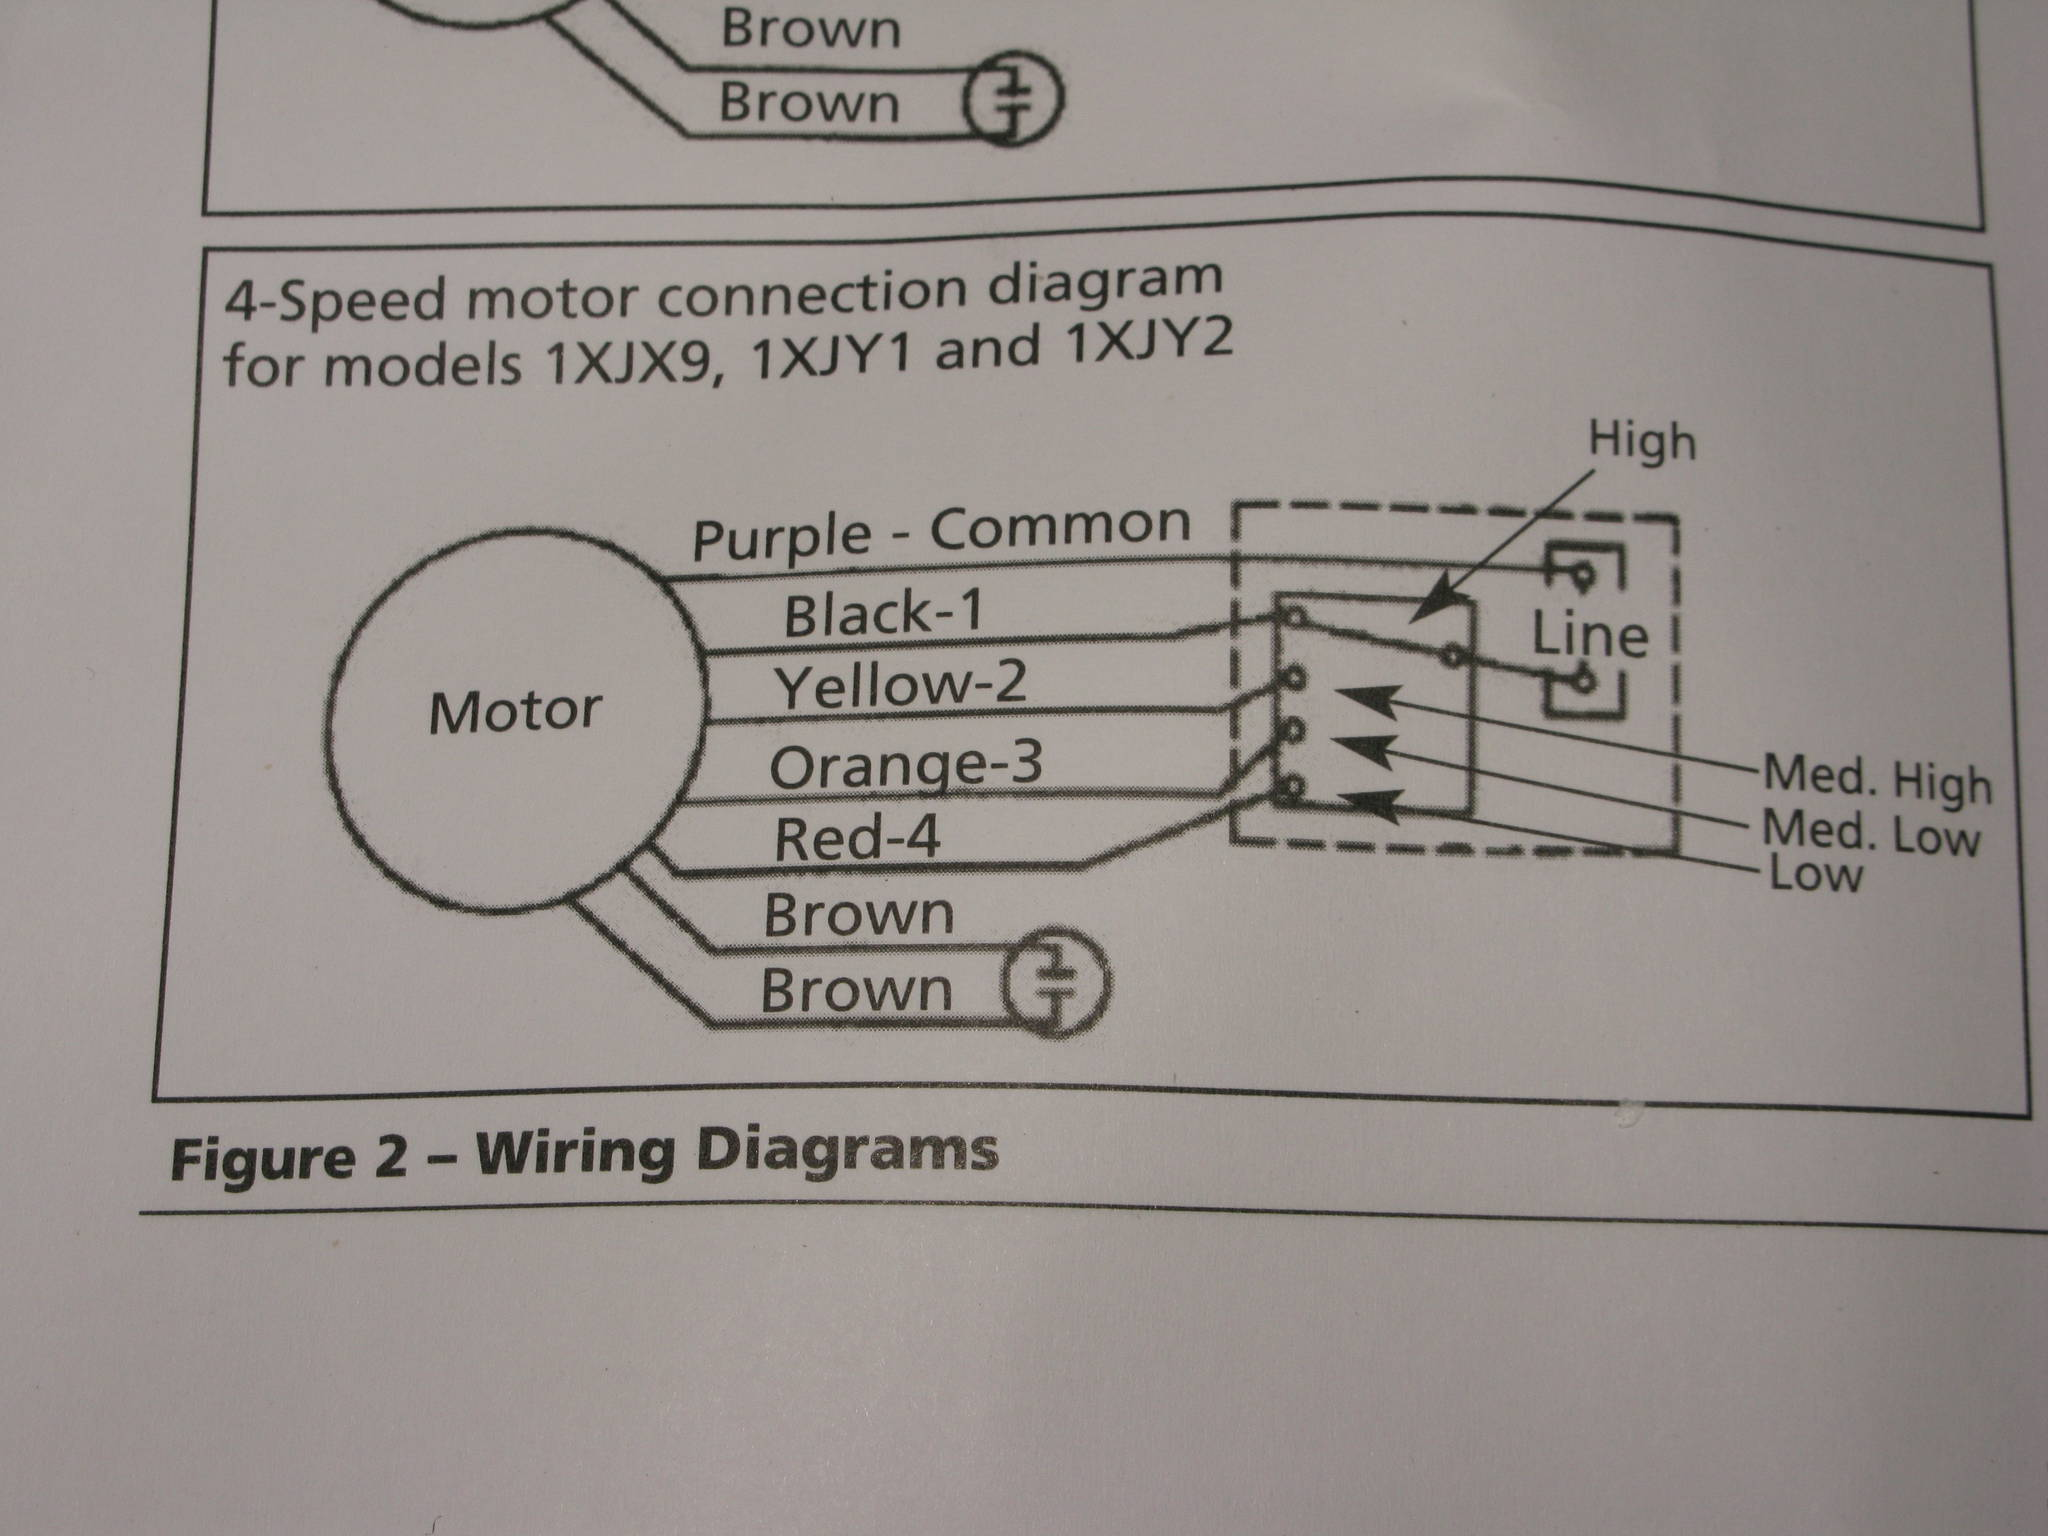 Wiring Diagram Blue Brown : Xjy dayton motor wiring flowhood mushroom